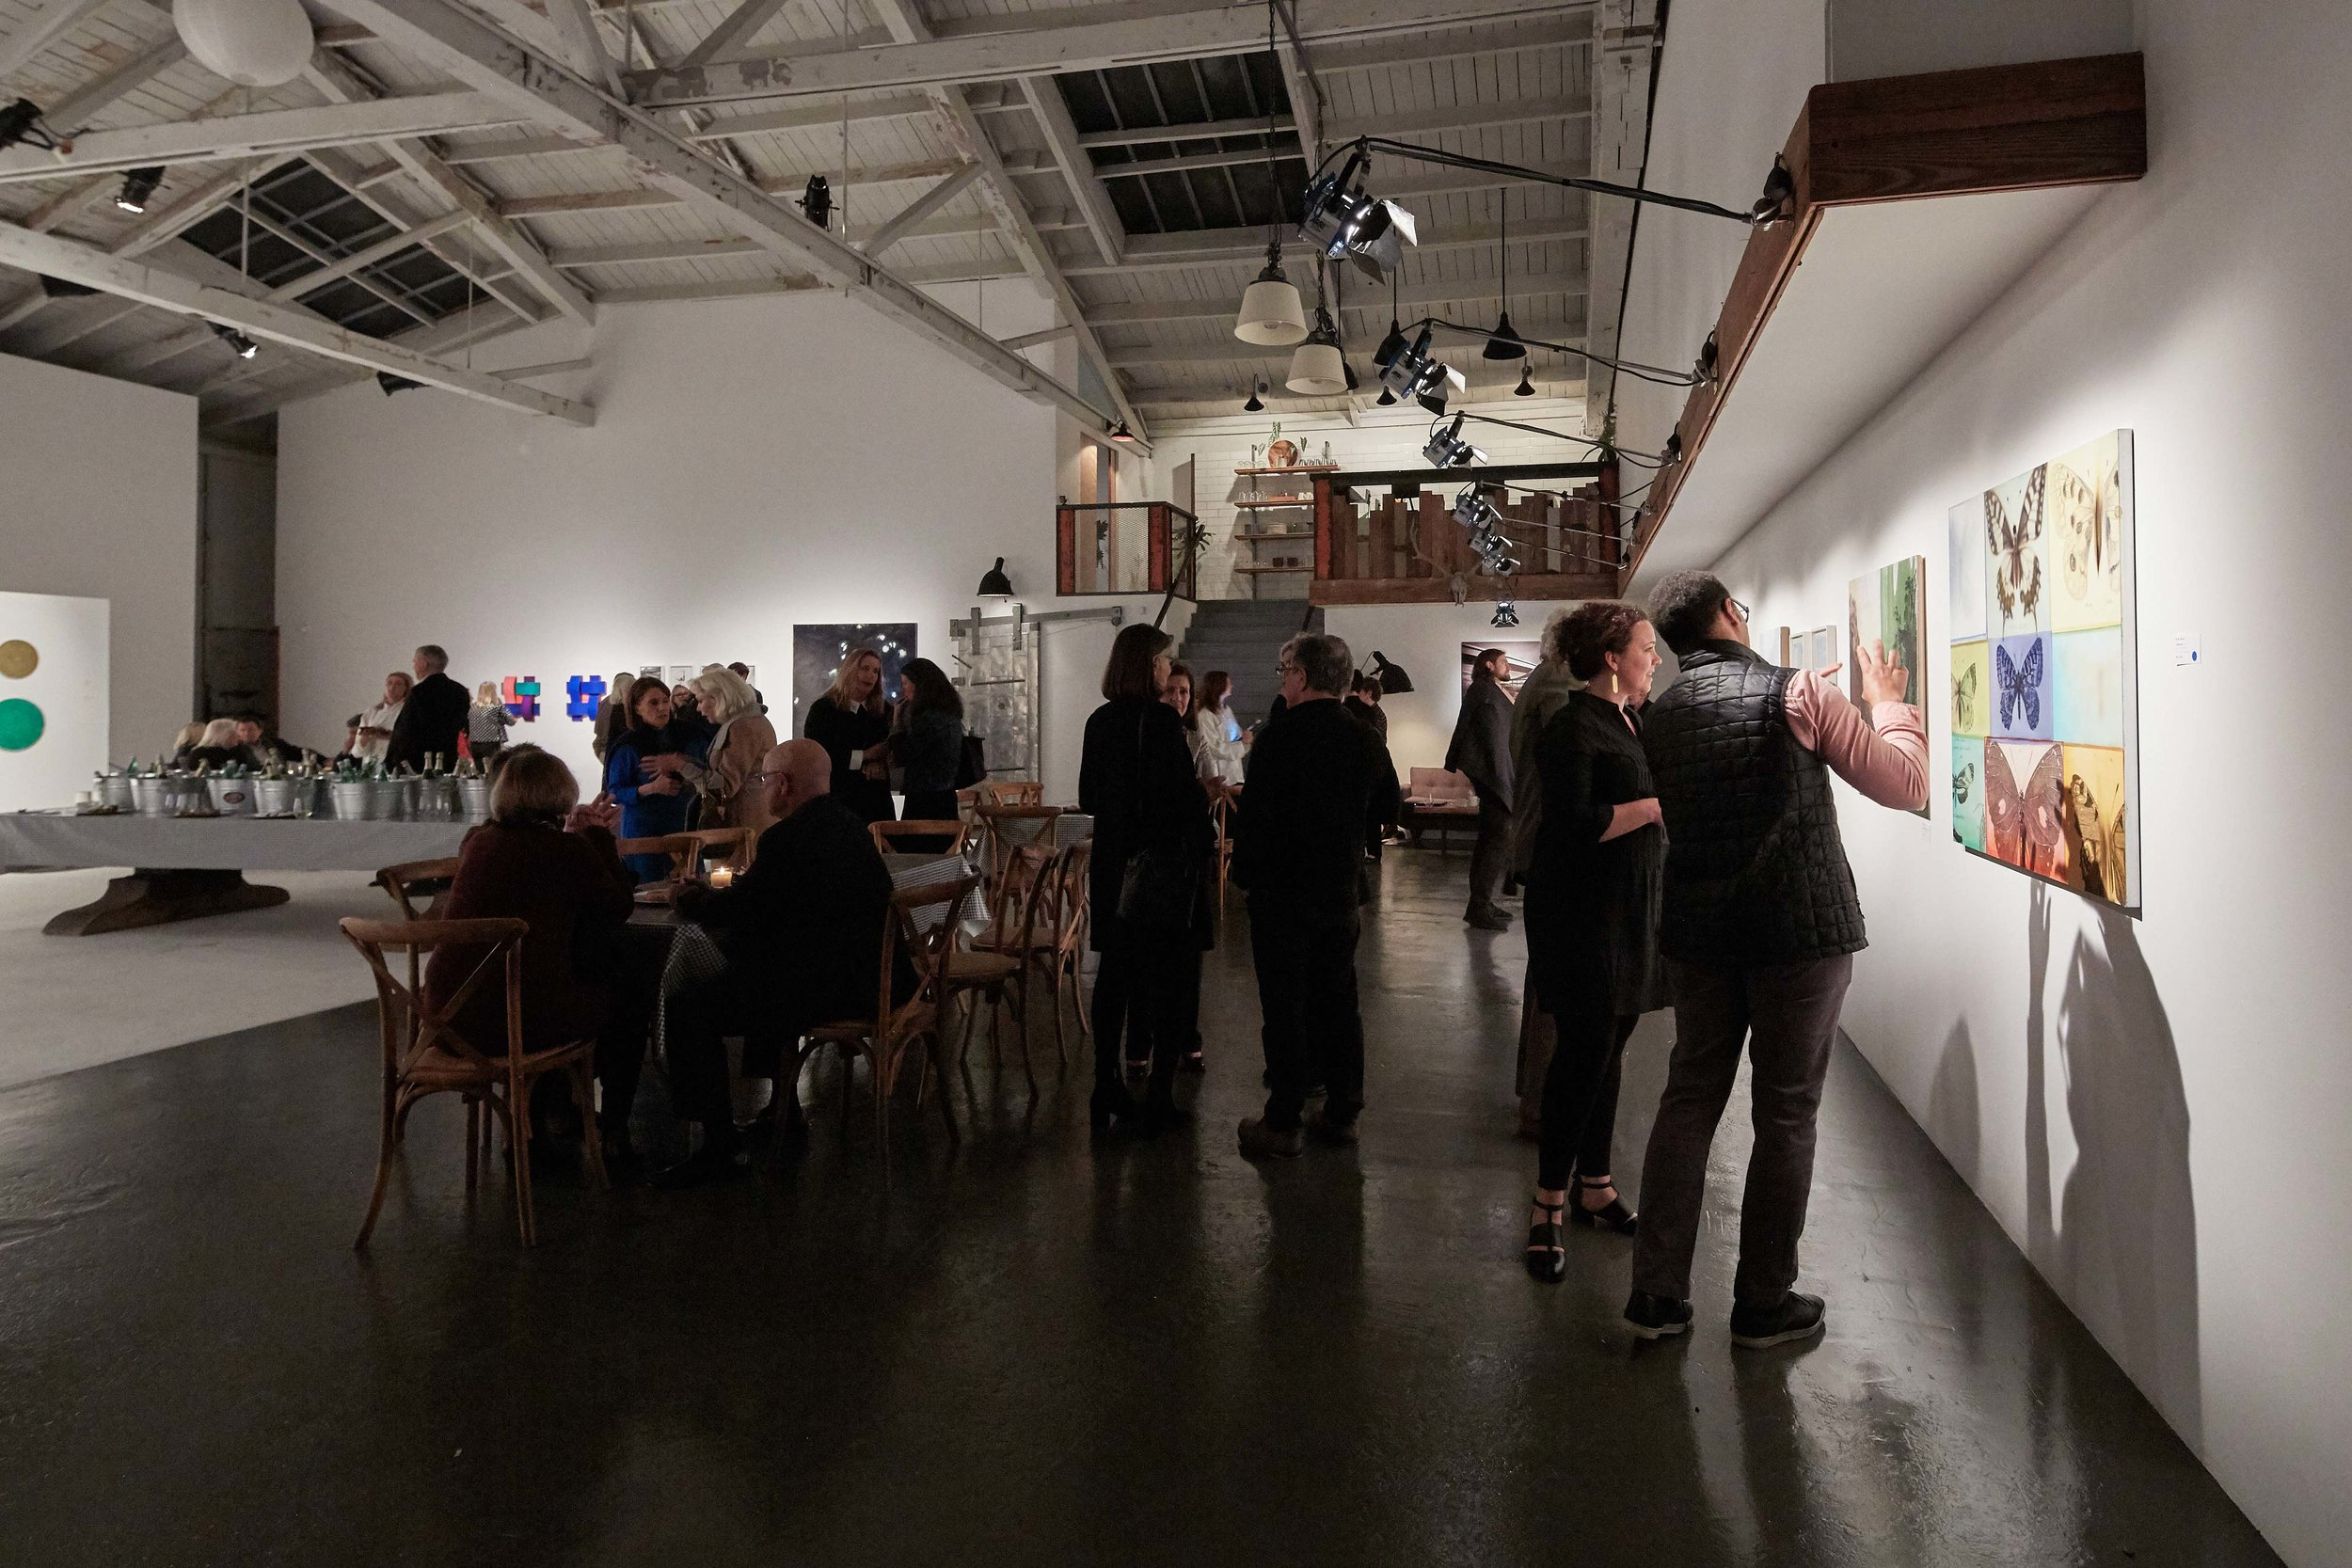 PriorEvents_ART-SHOW-BTS-0159_0063w.jpg